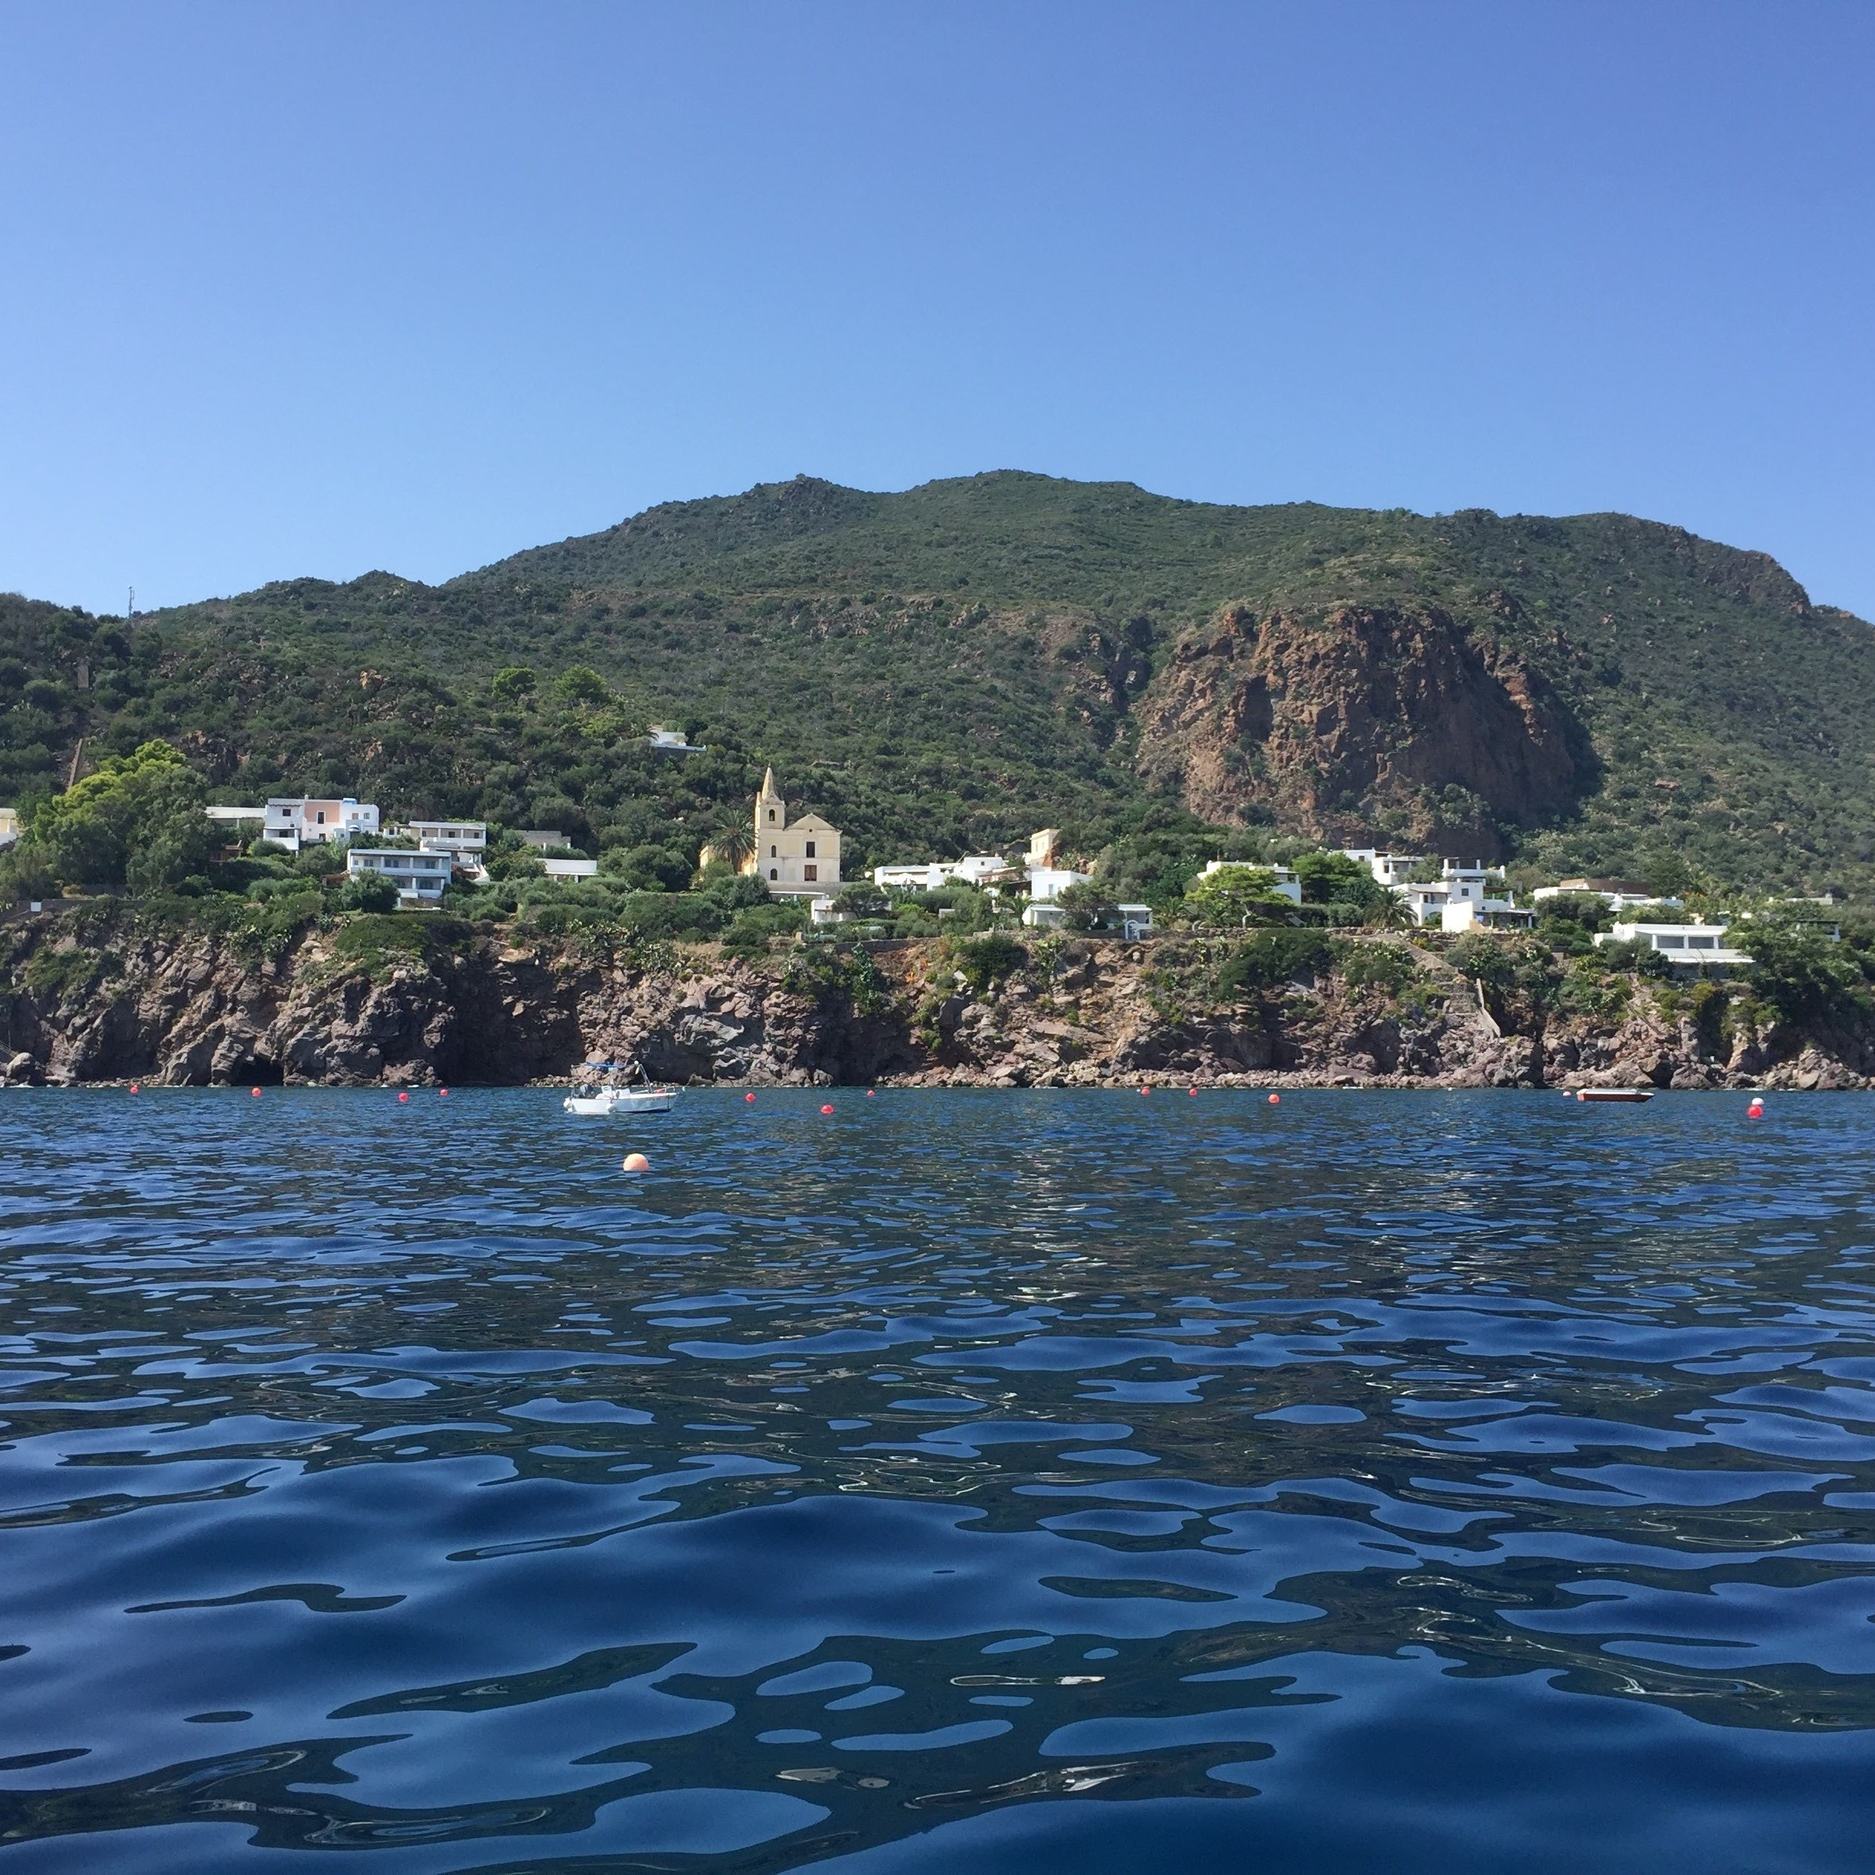 Panarea is the smallest Aeolian island, with no cars allowed. It would take only three hours to walk its perimeter, although few people are up for the rugged trek in summer. Instead, activity is focused primarily around San Pietro, where you'll find the main town and the port.